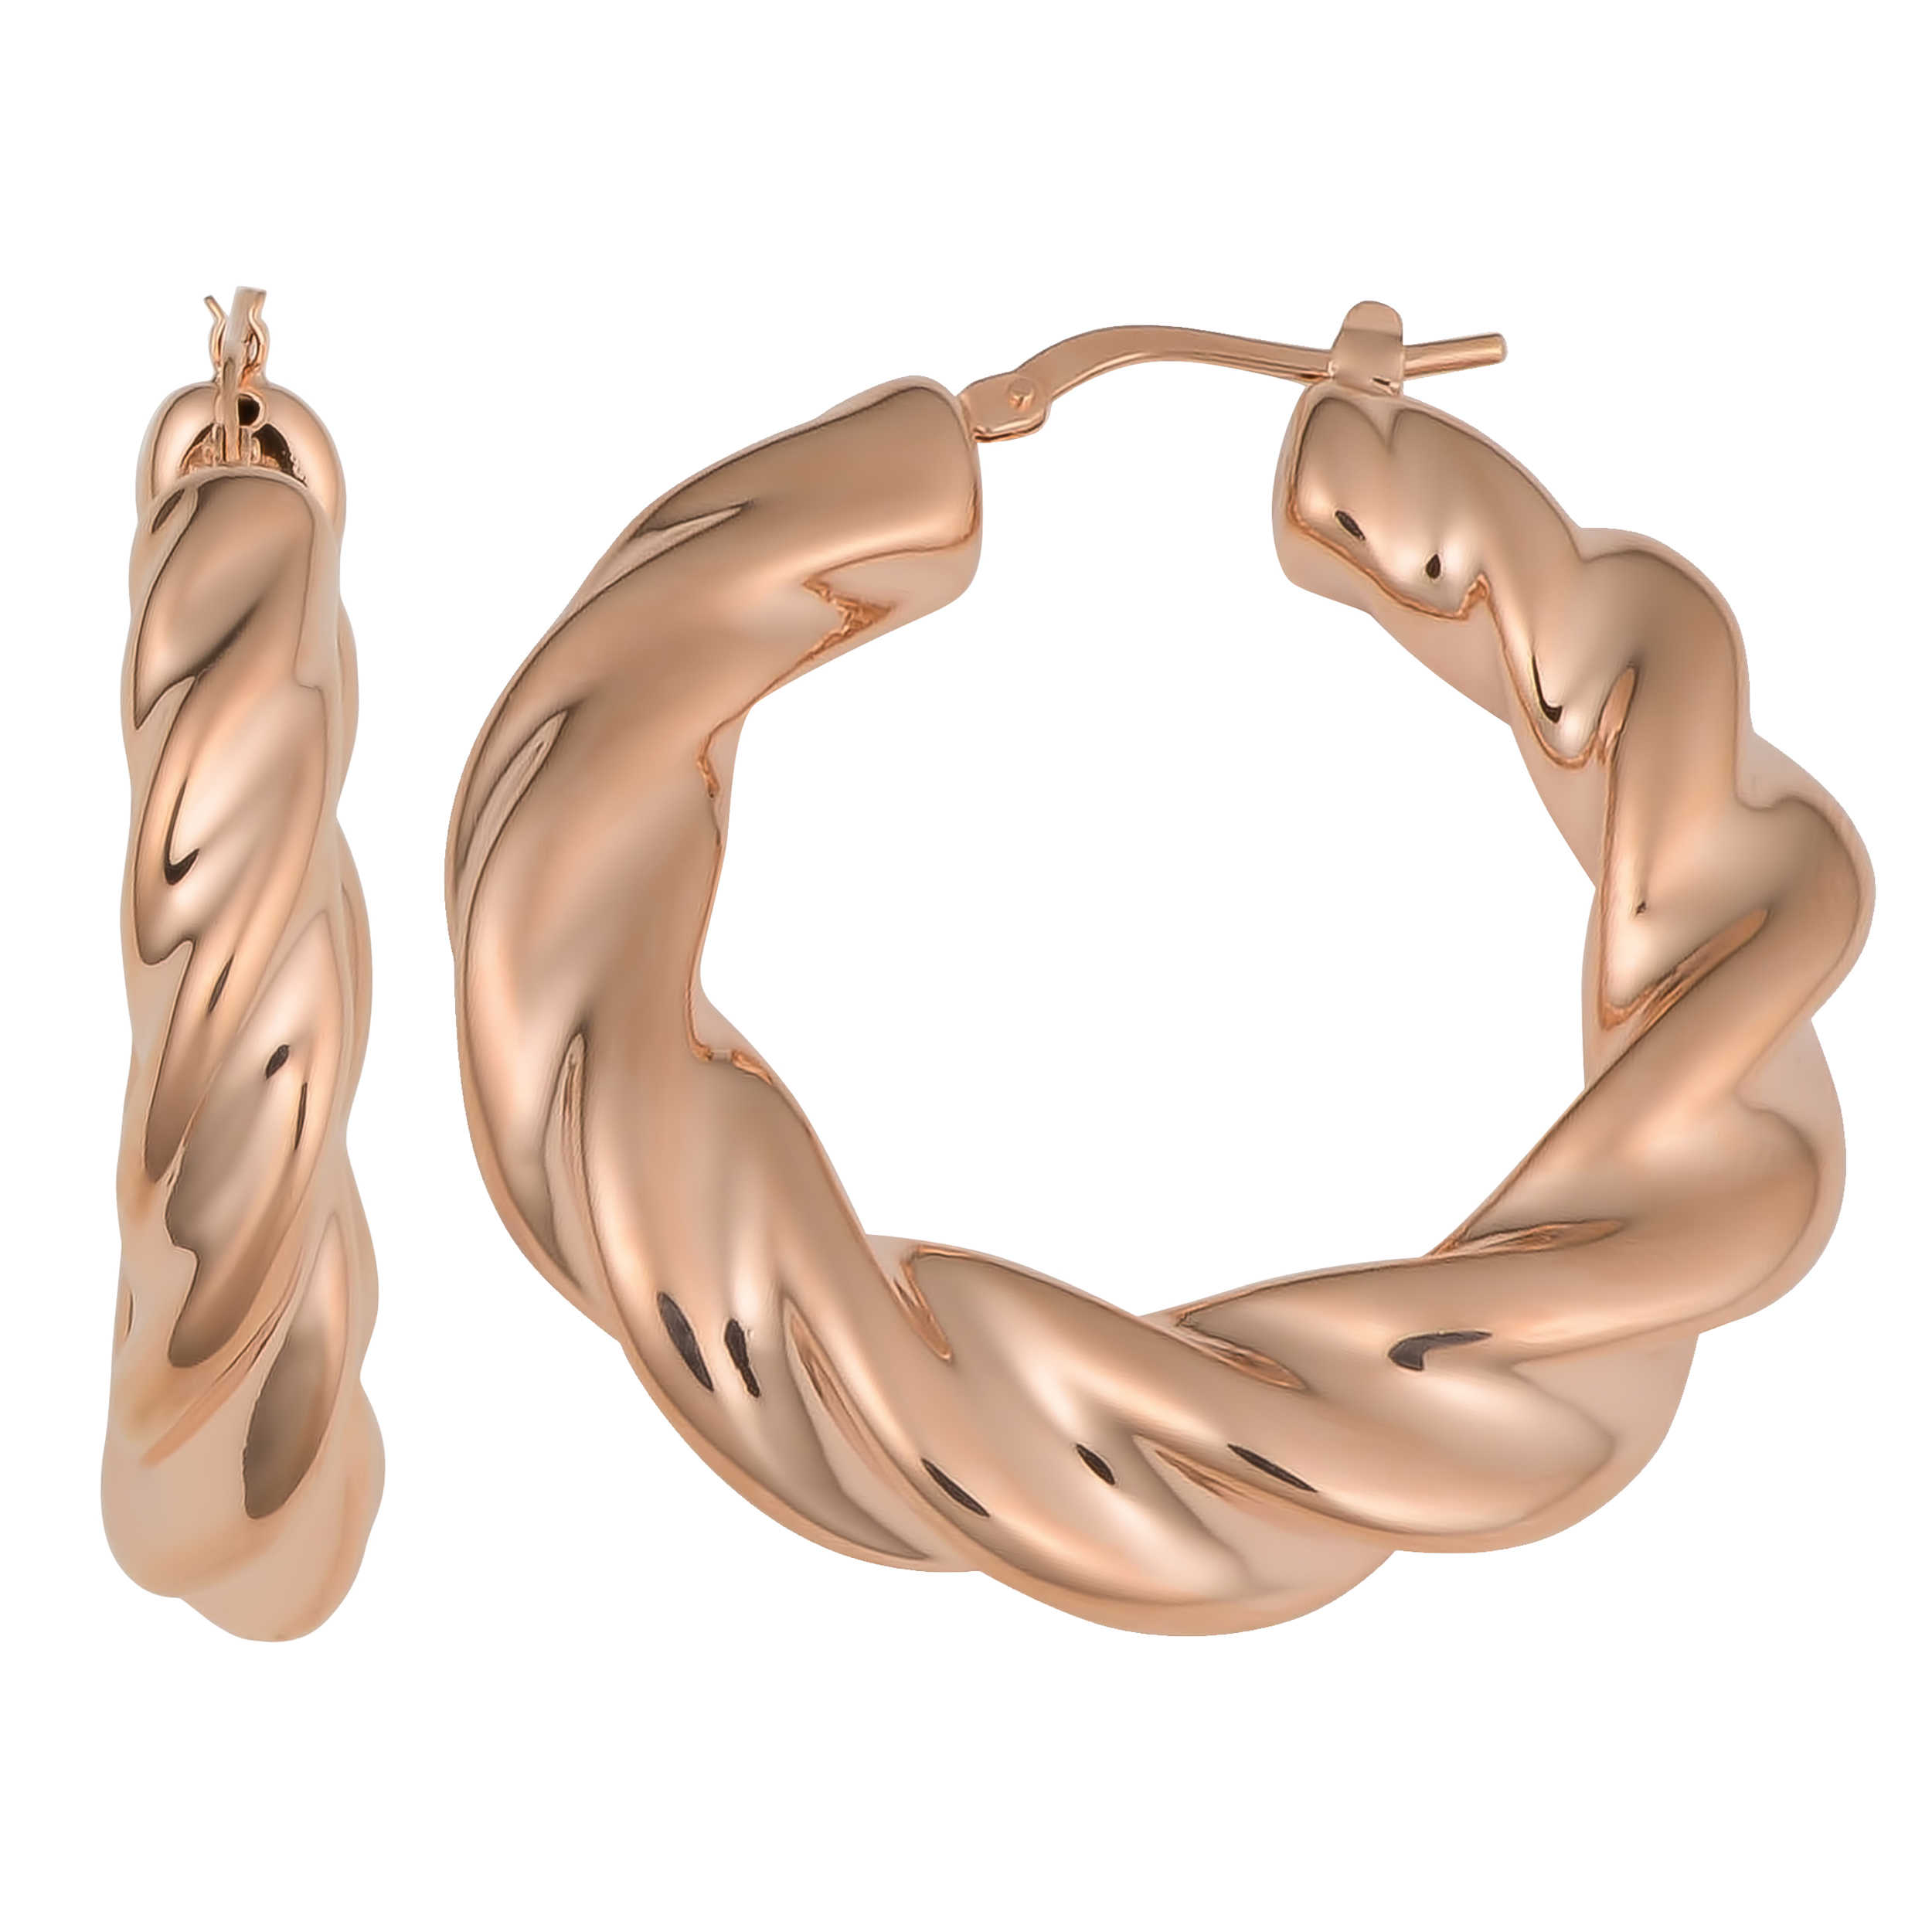 Overstock ORSE1757 Oro Rosa 18k Rose Gold over Bronze Italian High Polished Finish Twisted Hoop Earrings